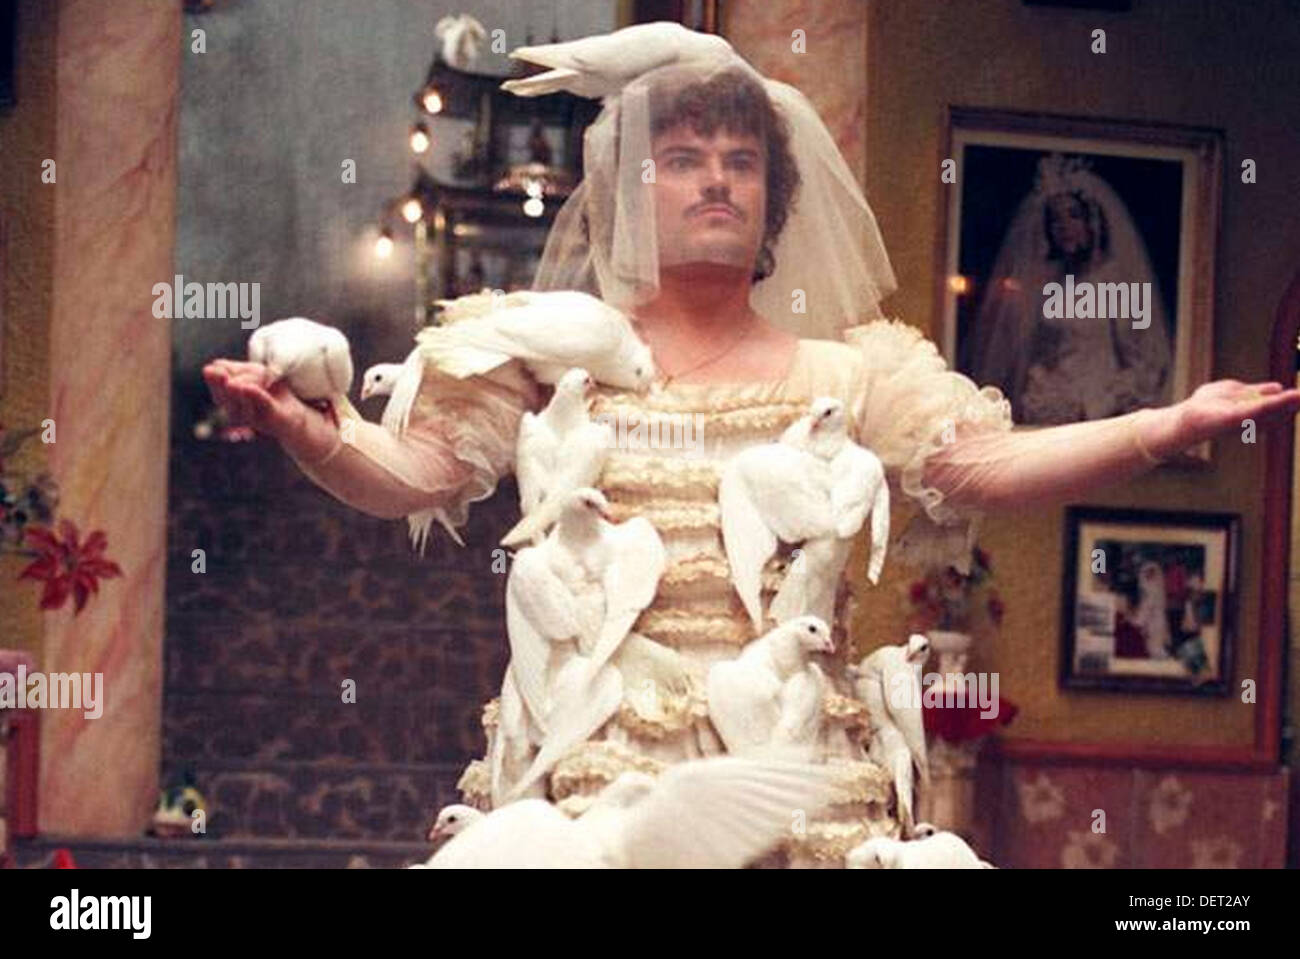 NACHO LIBRE 2005 Paramount Pictures film with Jack Black - Stock Image